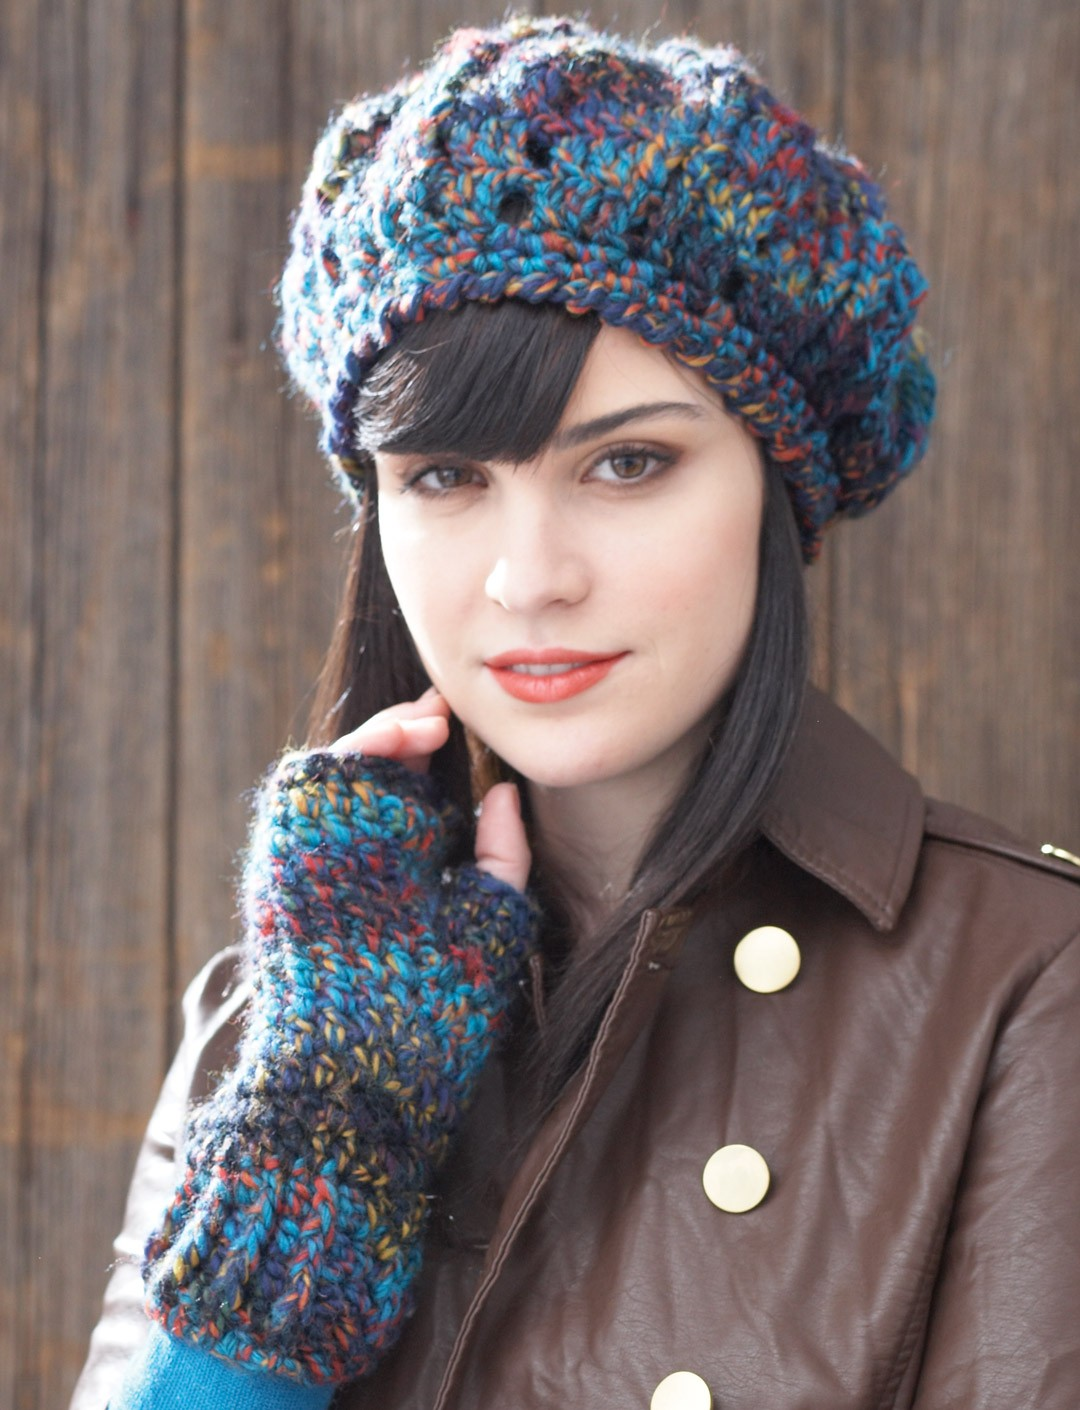 Beret and Fingerless Gloves